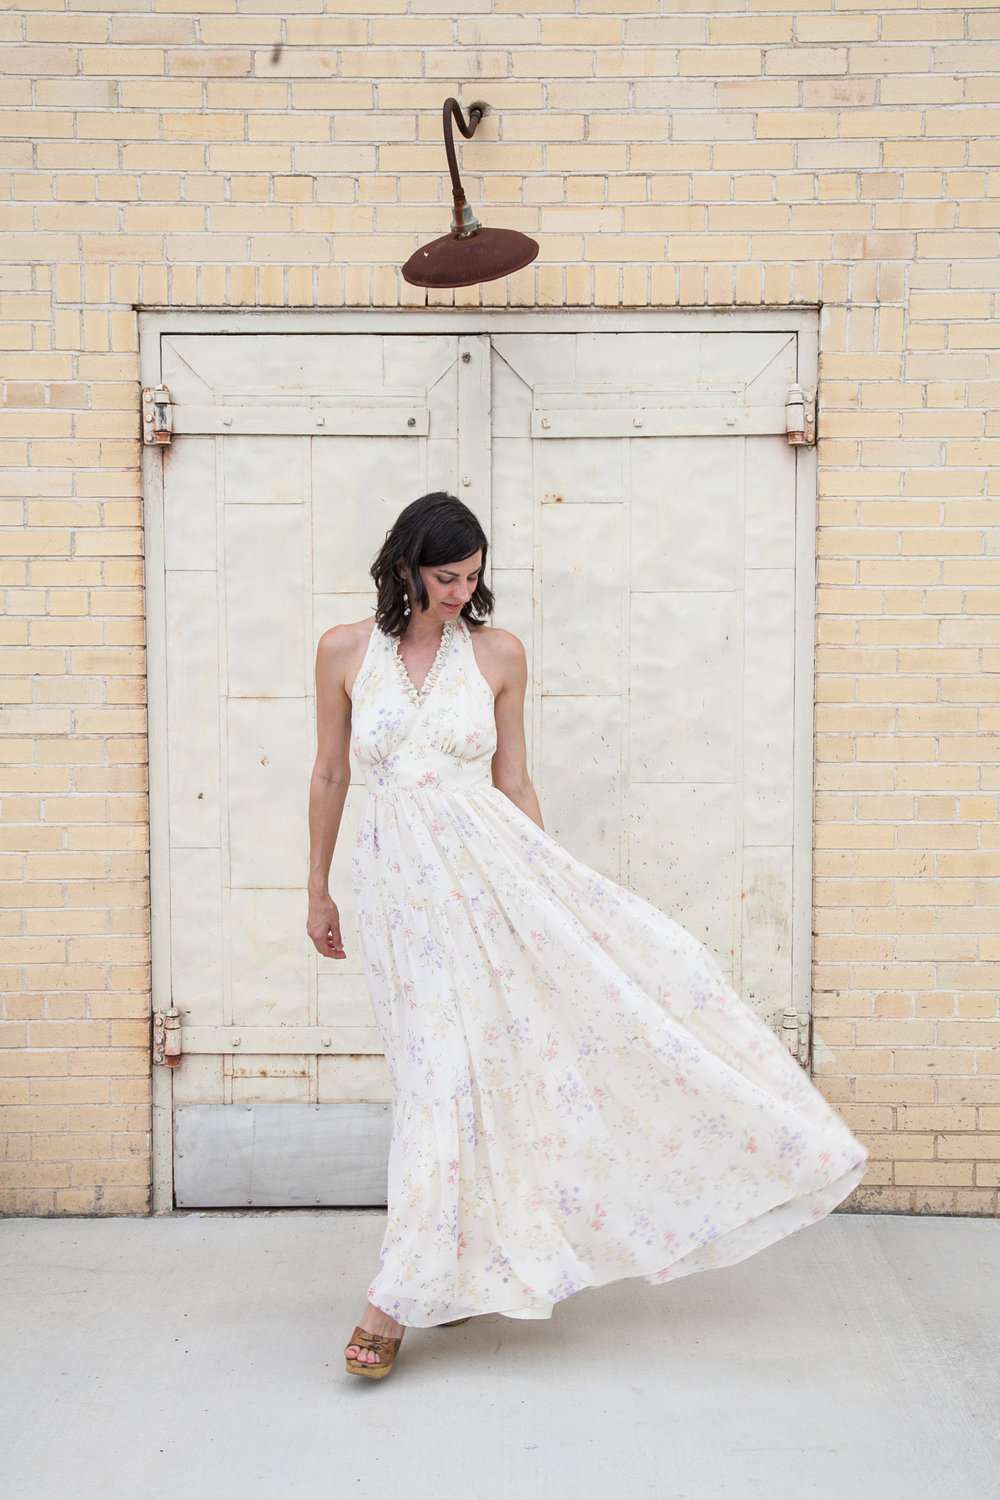 That skirt though! Love this sweet halter dress from Dalena Vintage.